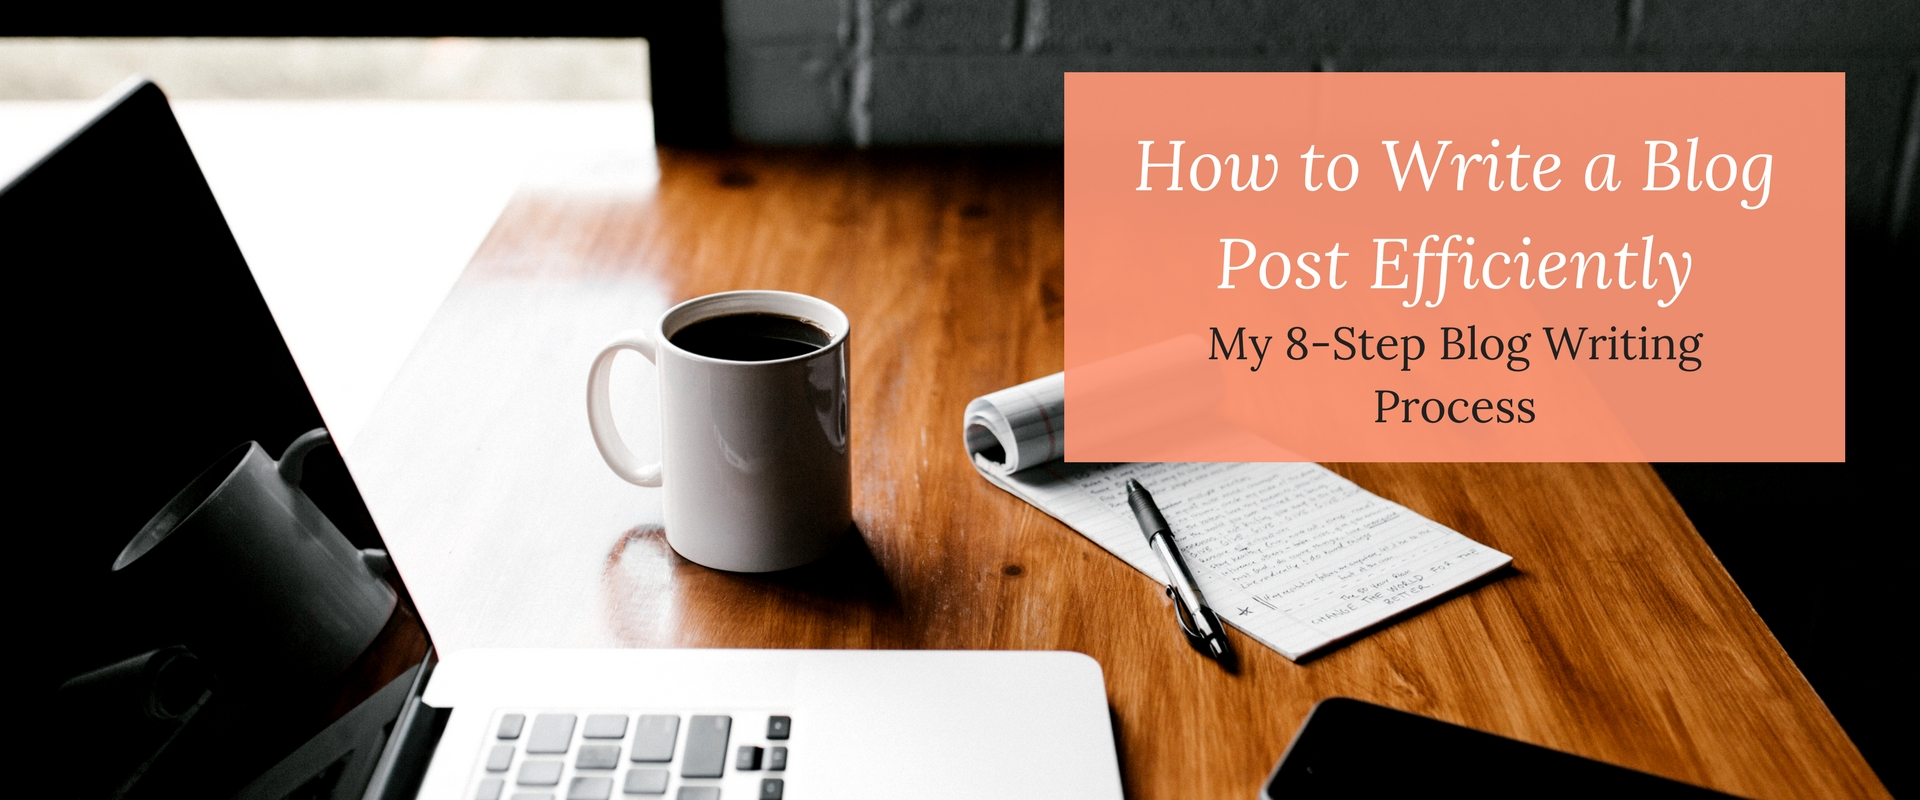 Is a lack of time keeping you from hitting your blogging goals? Having a process to follow can cut your blogging time in half! Here's my 8-step blog writing process to help you publish more content.